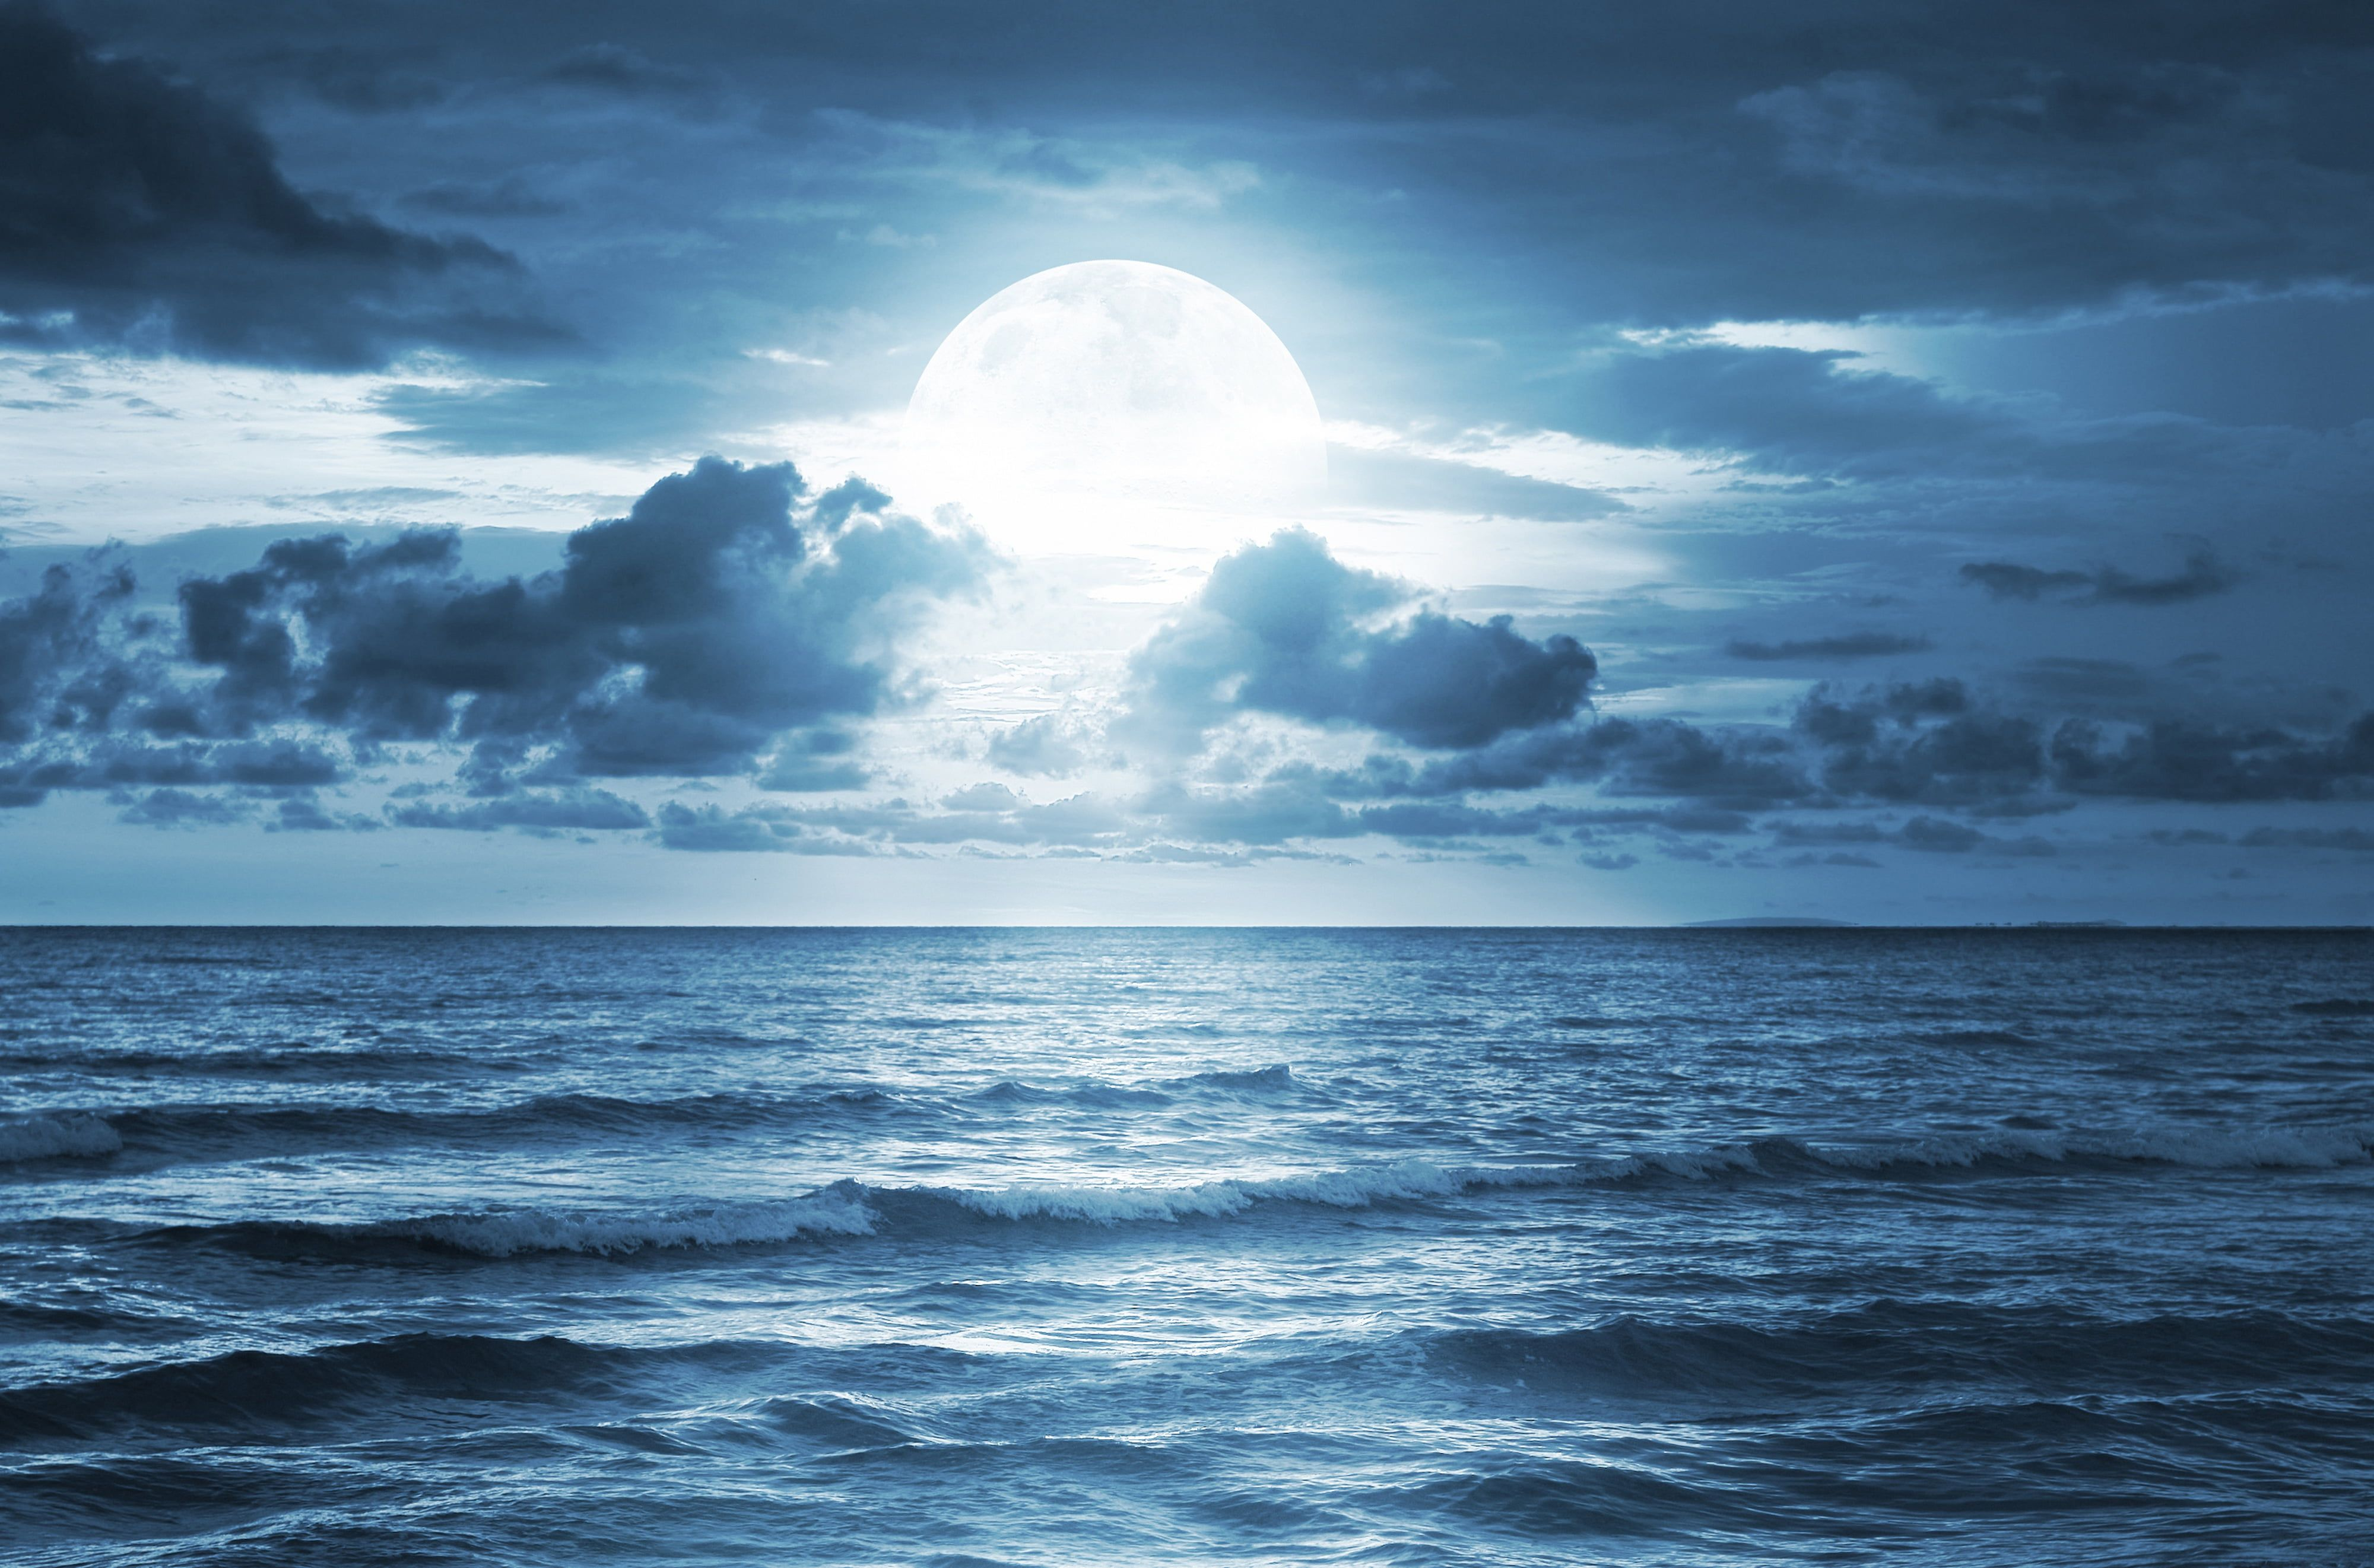 Tropical Waves Sky Mountains Clouds Island Moon Night: Ocean Waves At Night Wallpapers